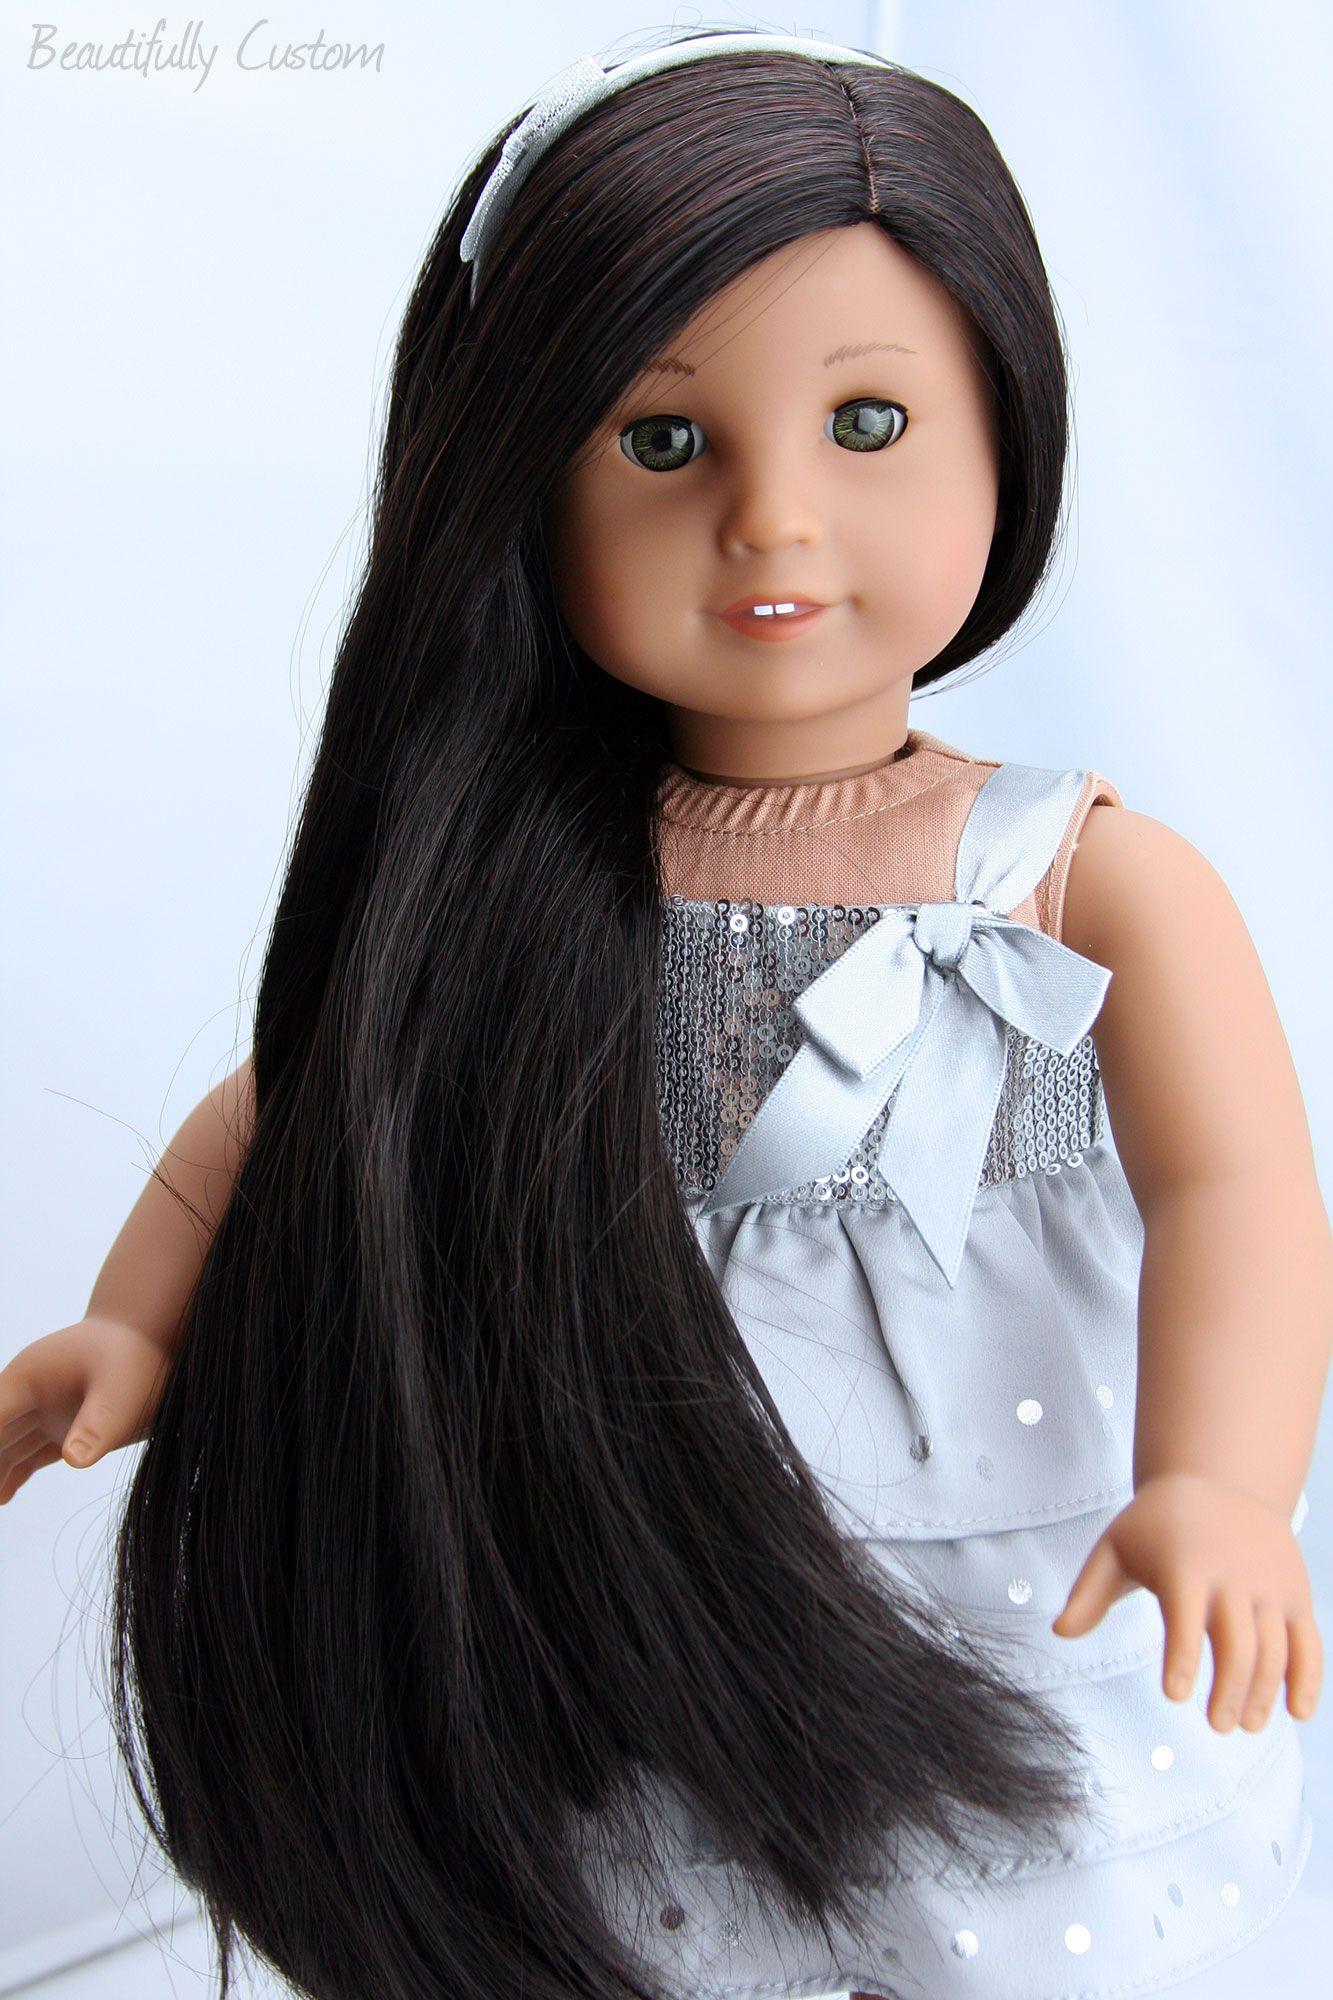 Custom American Girl Doll Hazel Green Eyes, Medium Skin